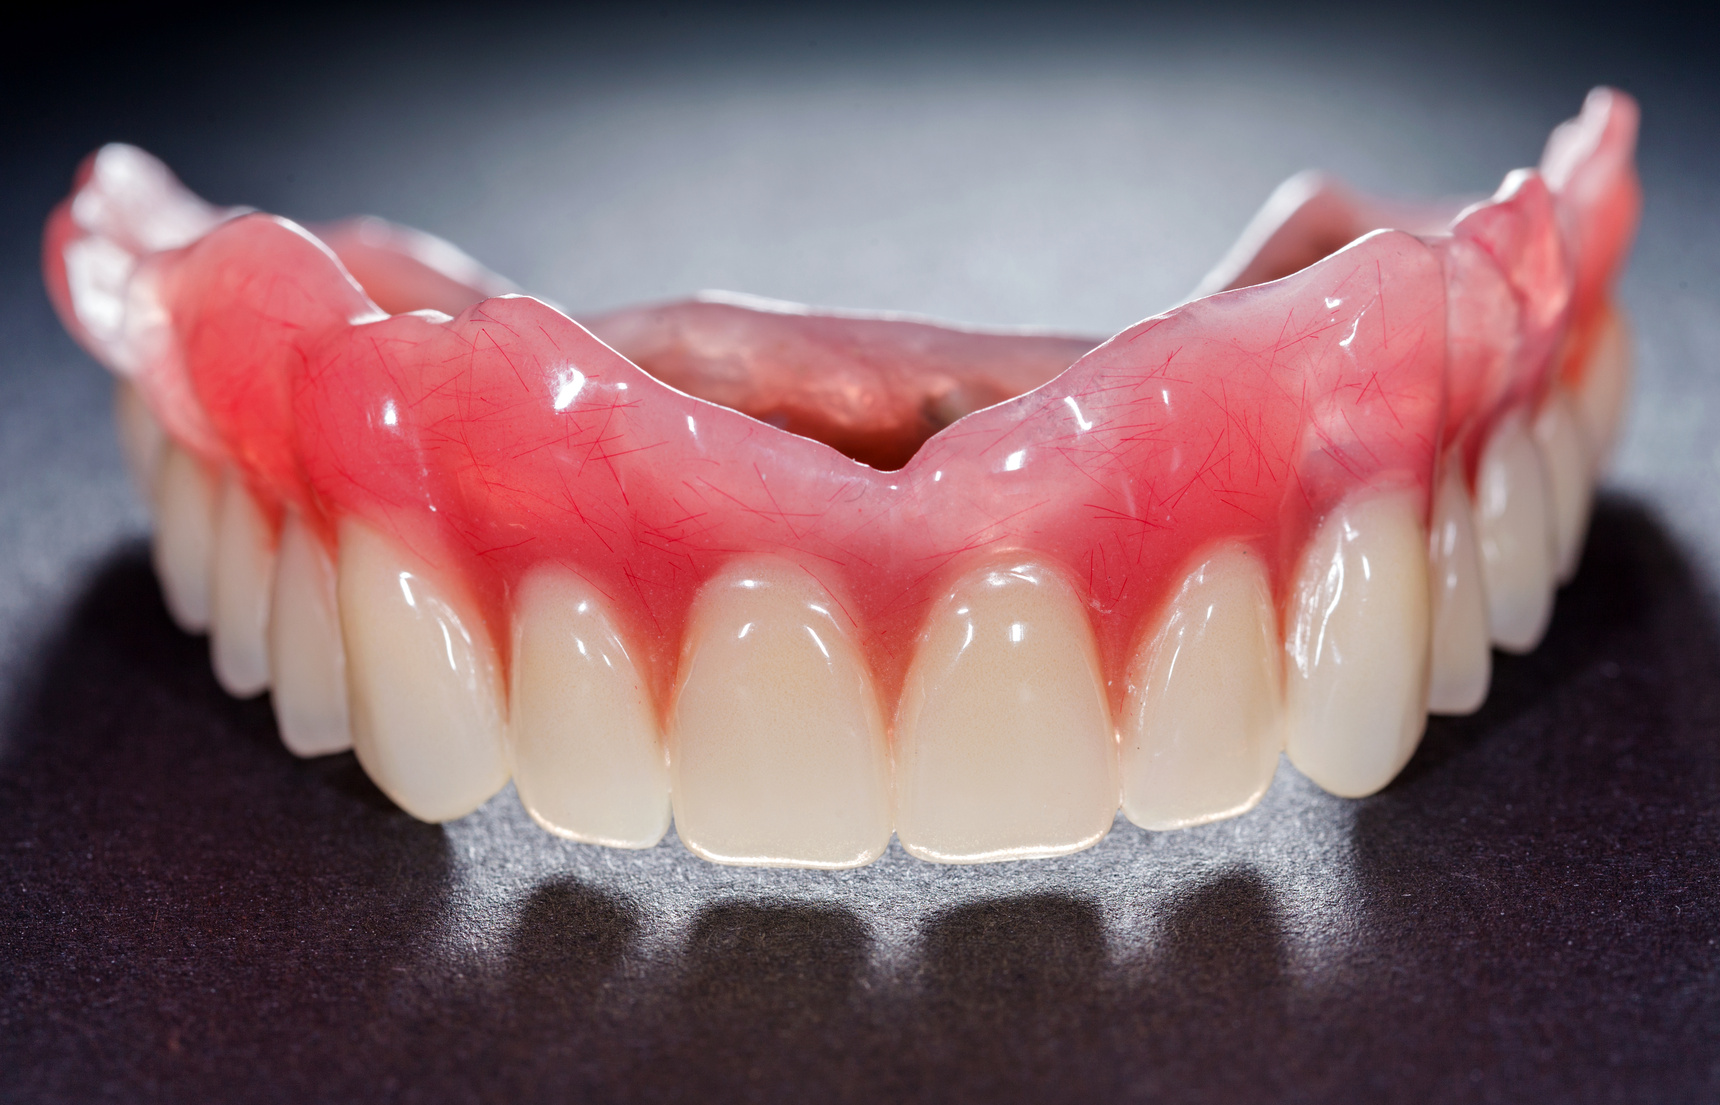 When are dentures appropriate?